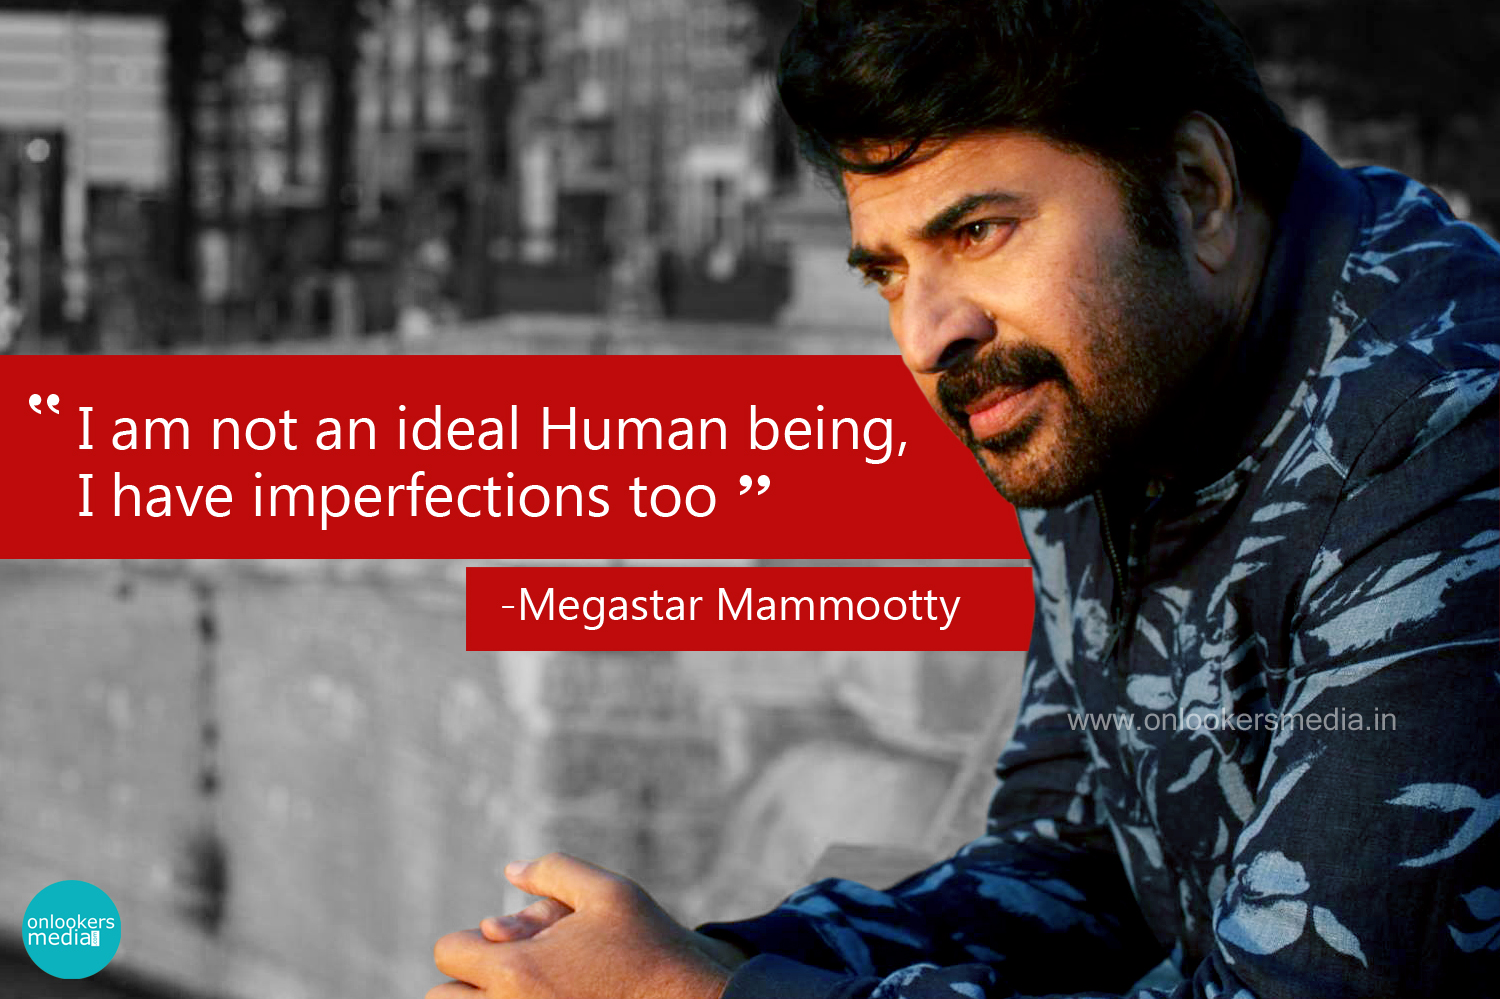 I am not an ideal Human being, I have imperfections too, says Mega star Mammootty-Malayalam Movies-2014-Onlookers Media